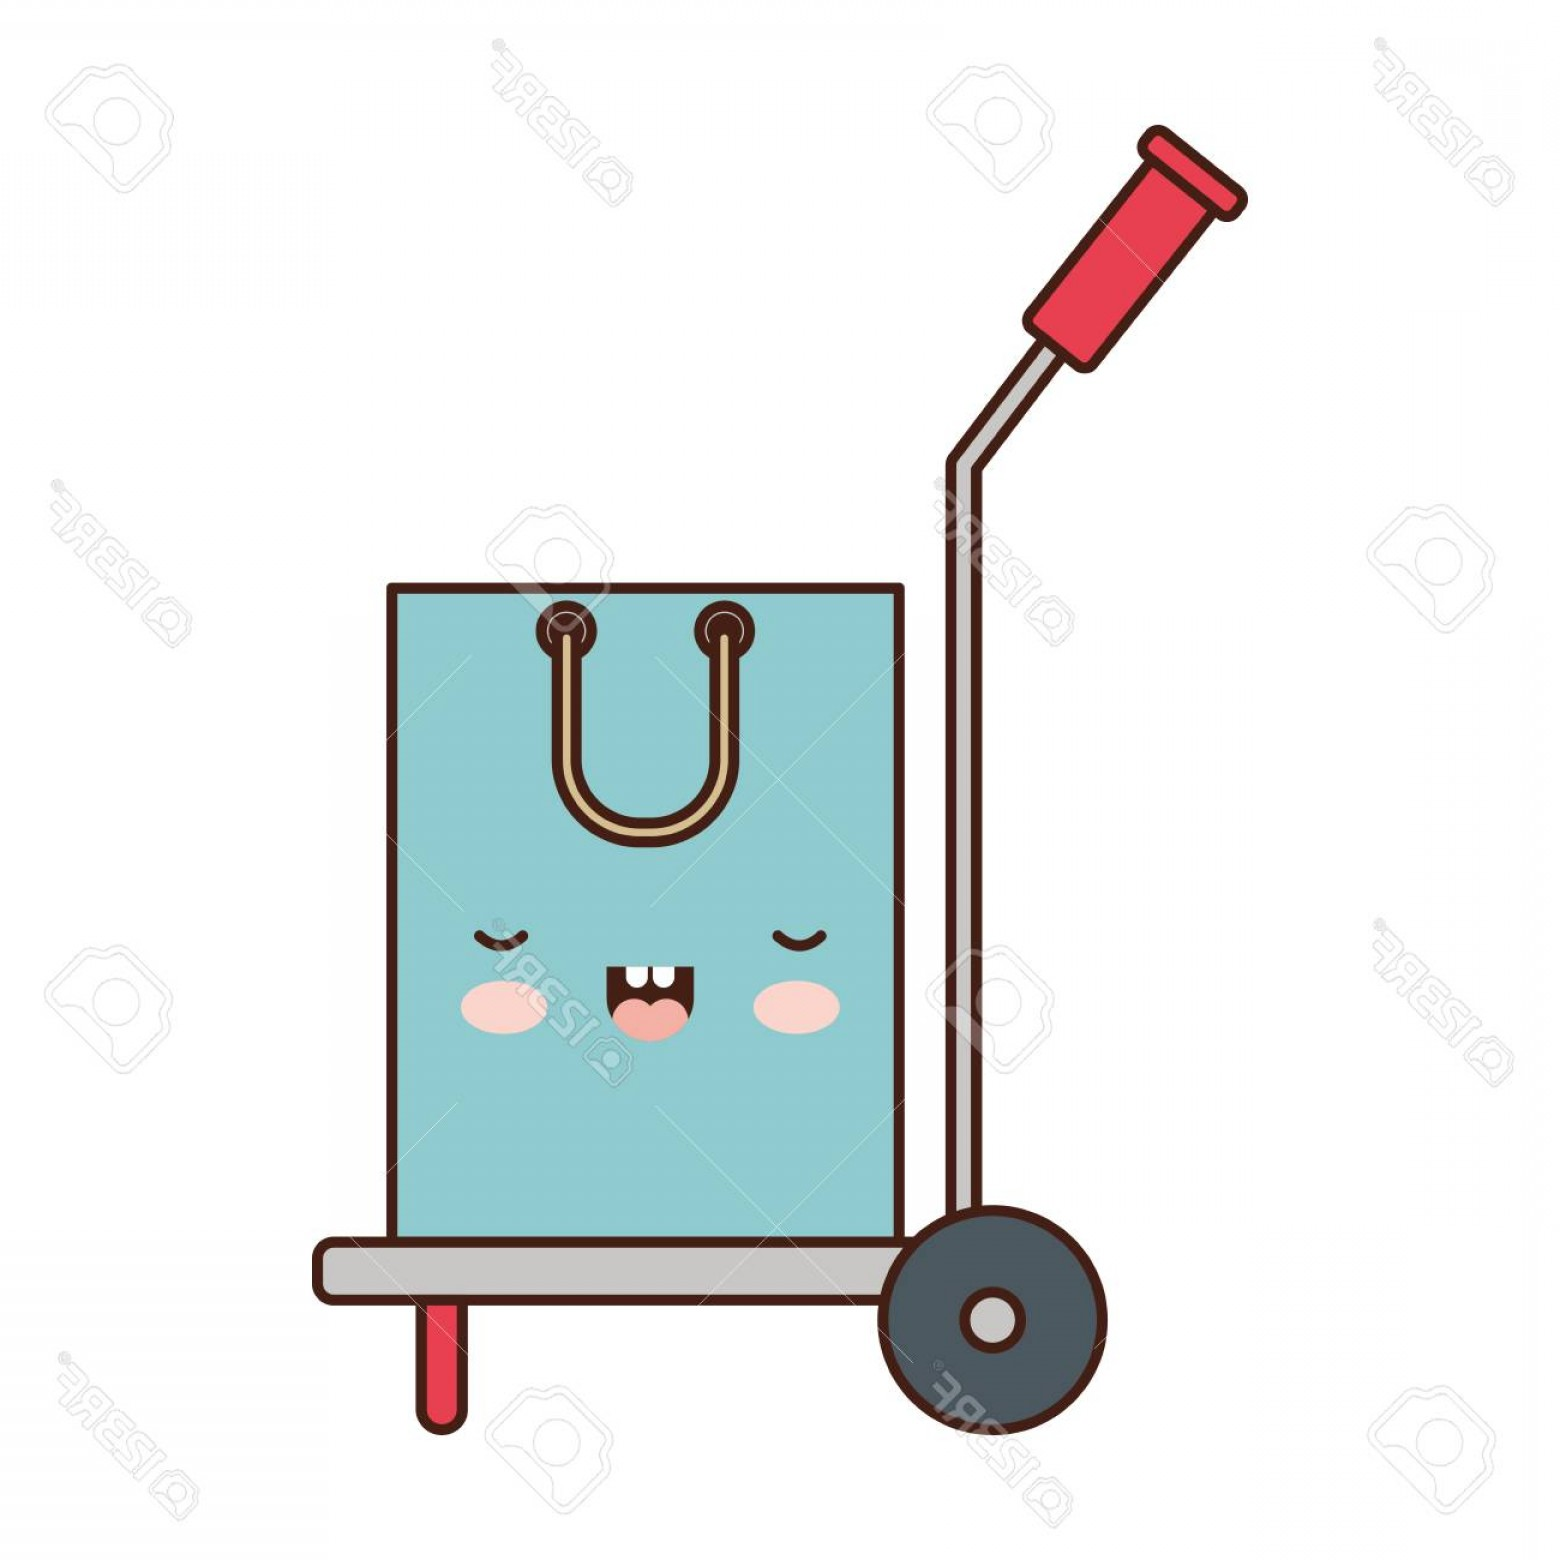 Hand Cart Silhouette Vectors: Photostock Vector A Hand Truck With Shopping Bag In Colorful Silhouette Vector Illustration